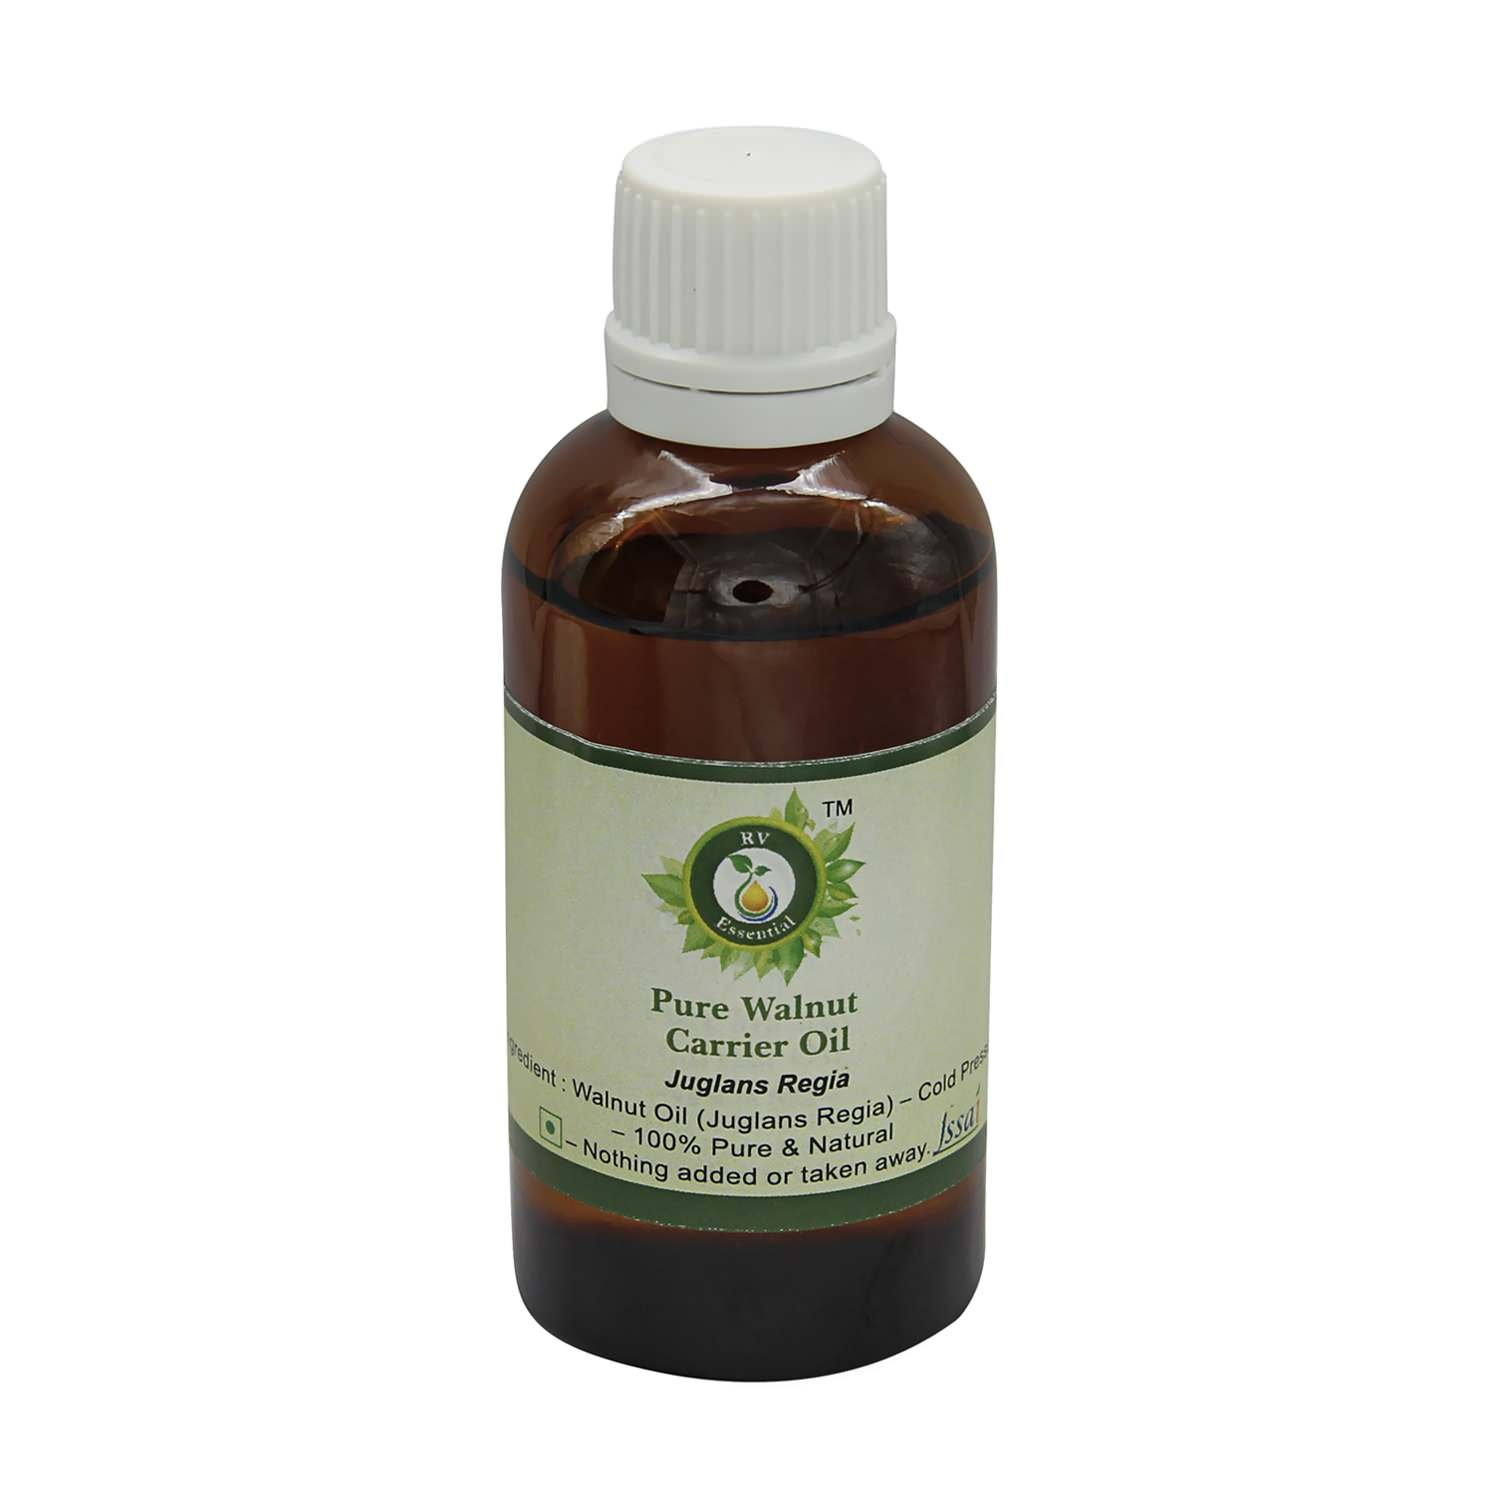 Walnut Oil | Juglans Regia | Pure Walnut Oil | For Hair | For Diffuser | For Skin | For Painting | For Cooking | 100% Pure Natural | Cold Pressed | 300ml | 10oz By R V Essential